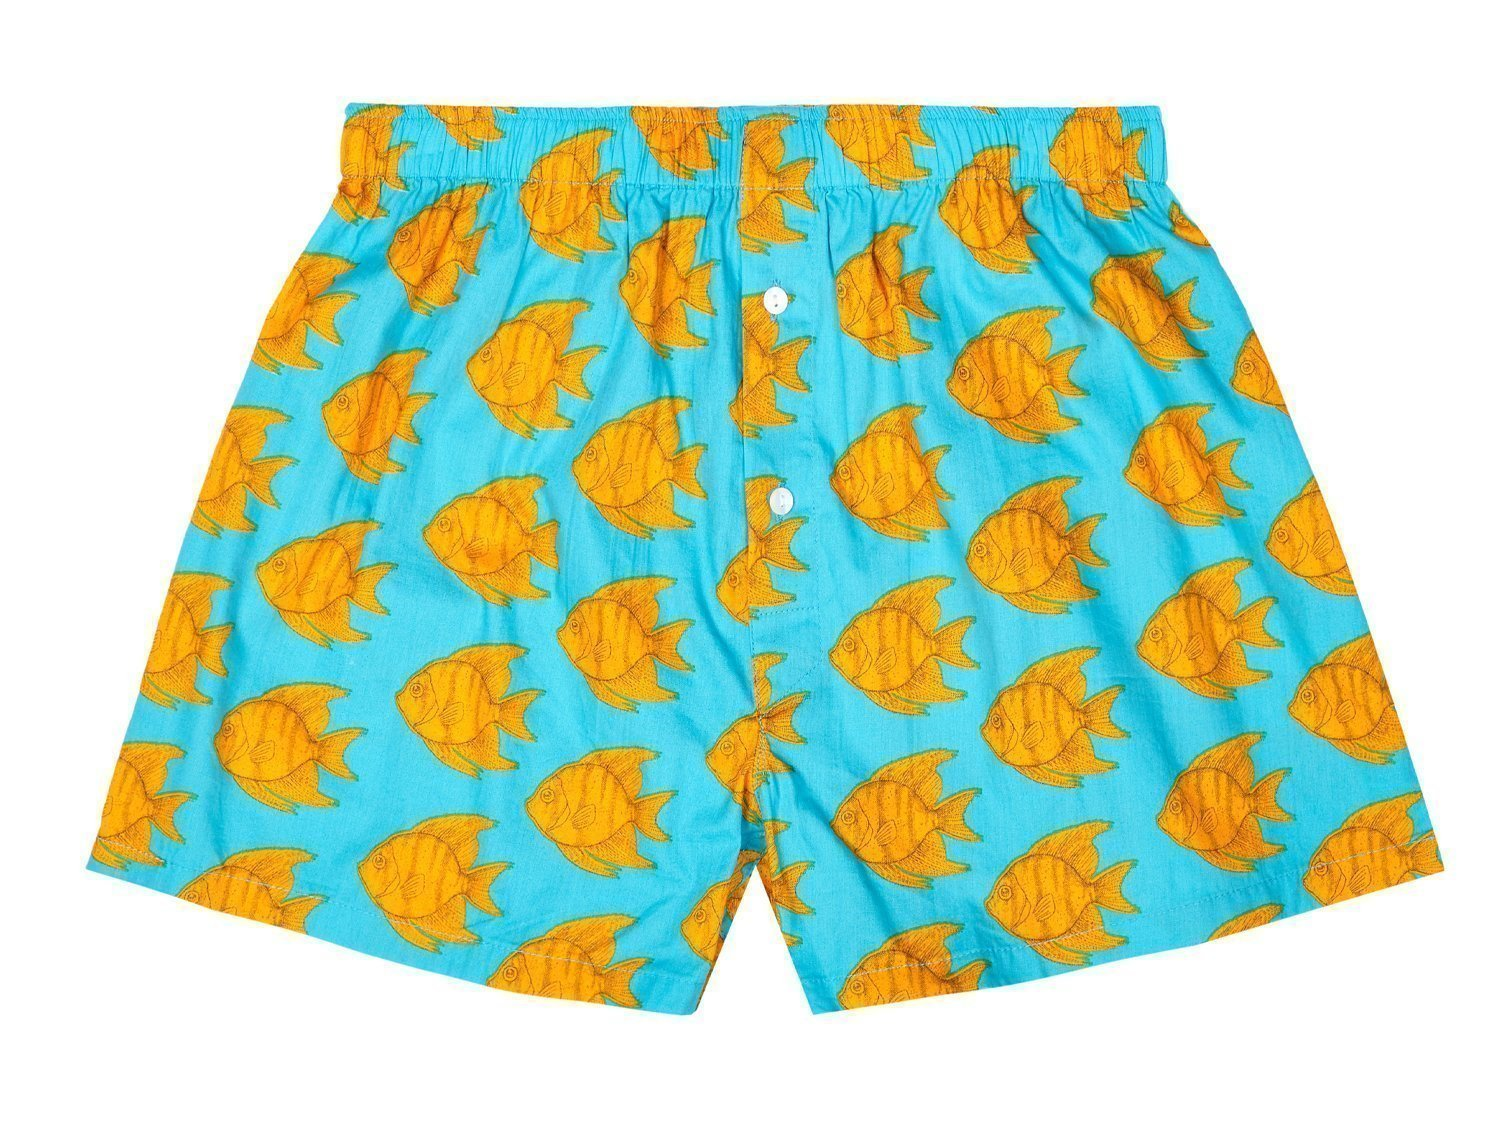 Flying Fish Boxer Shorts